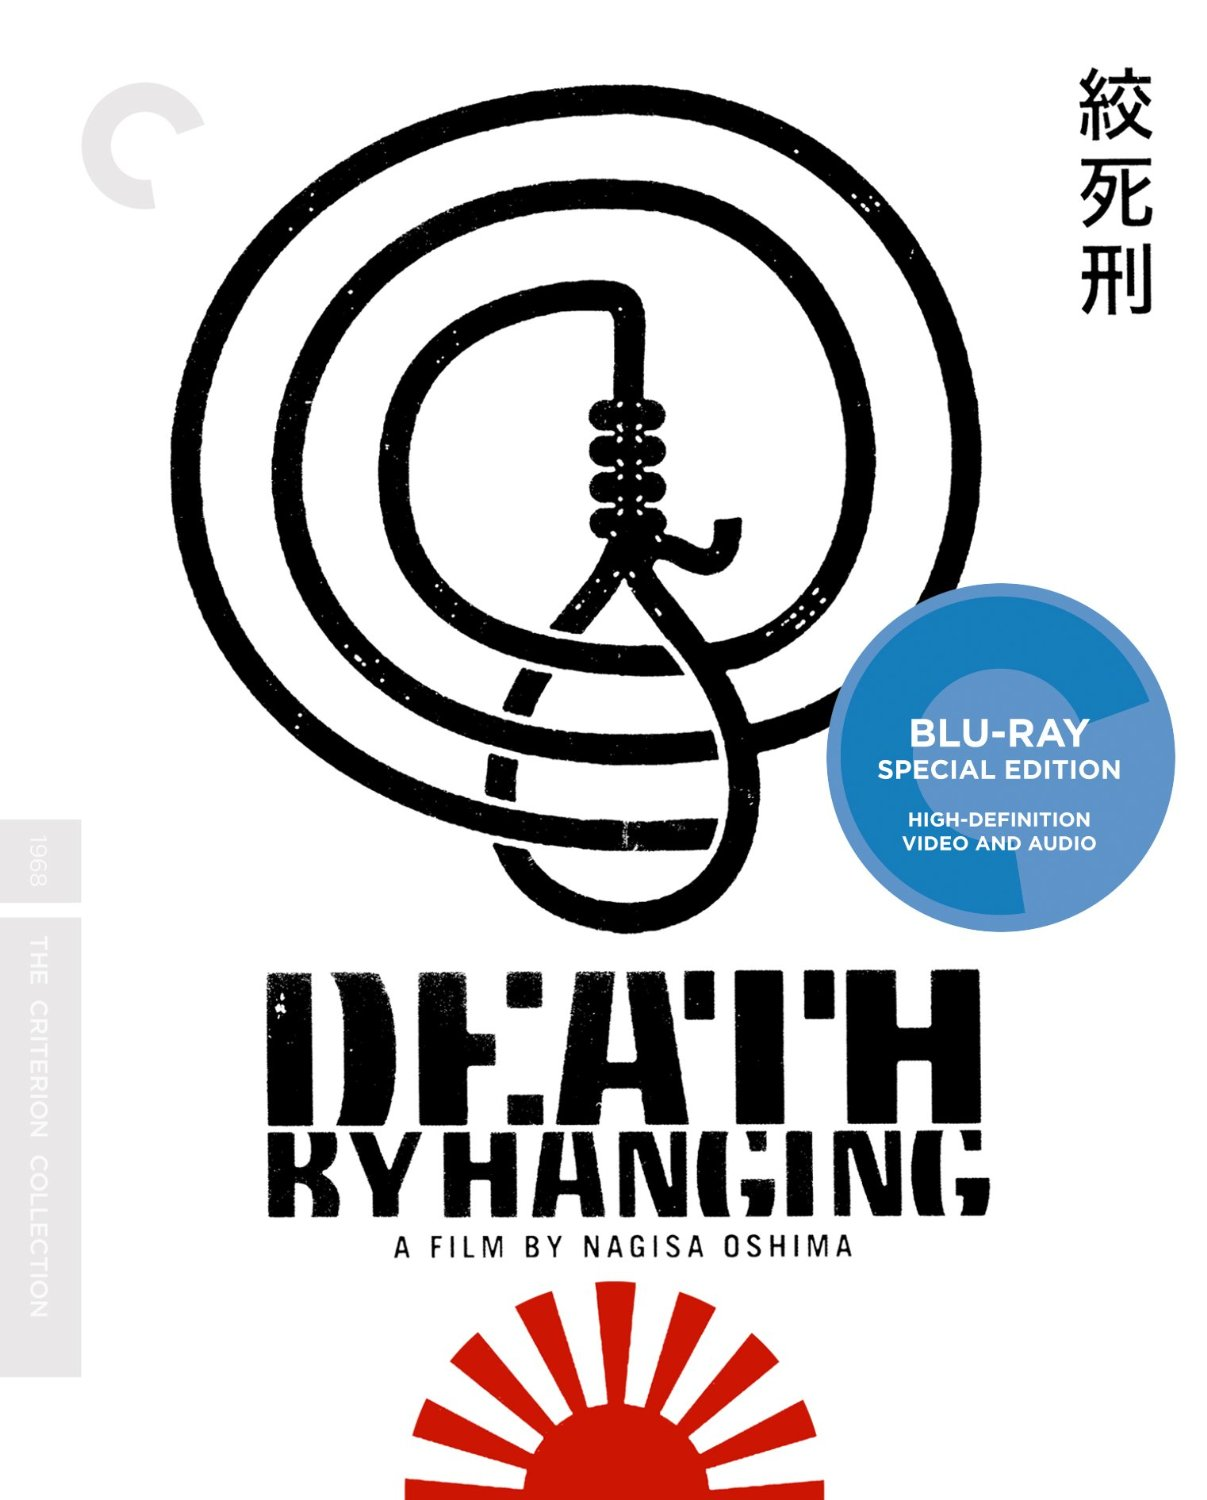 Death by hanging blu ray review slant magazine biocorpaavc Image collections